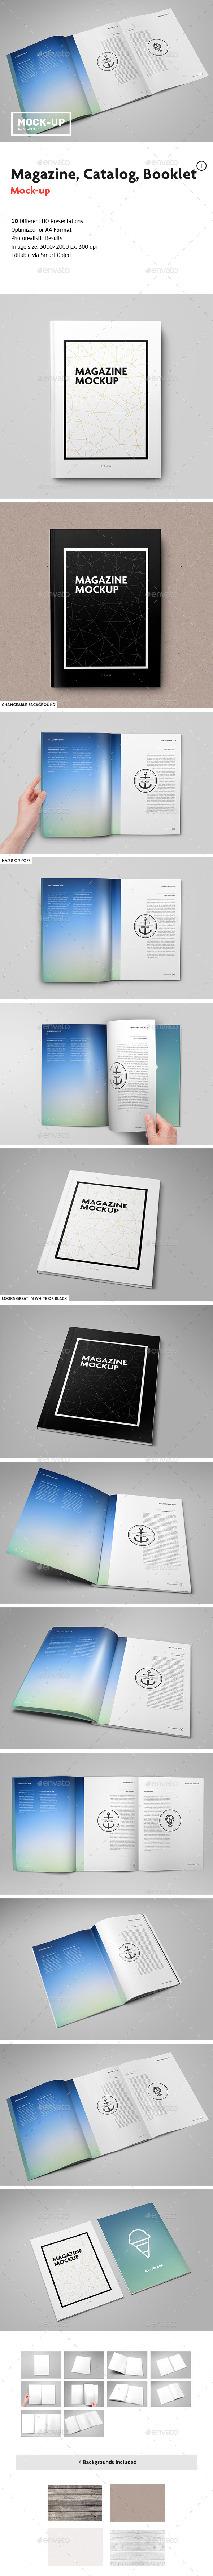 Magazine Catalog Booklet Mock-Up